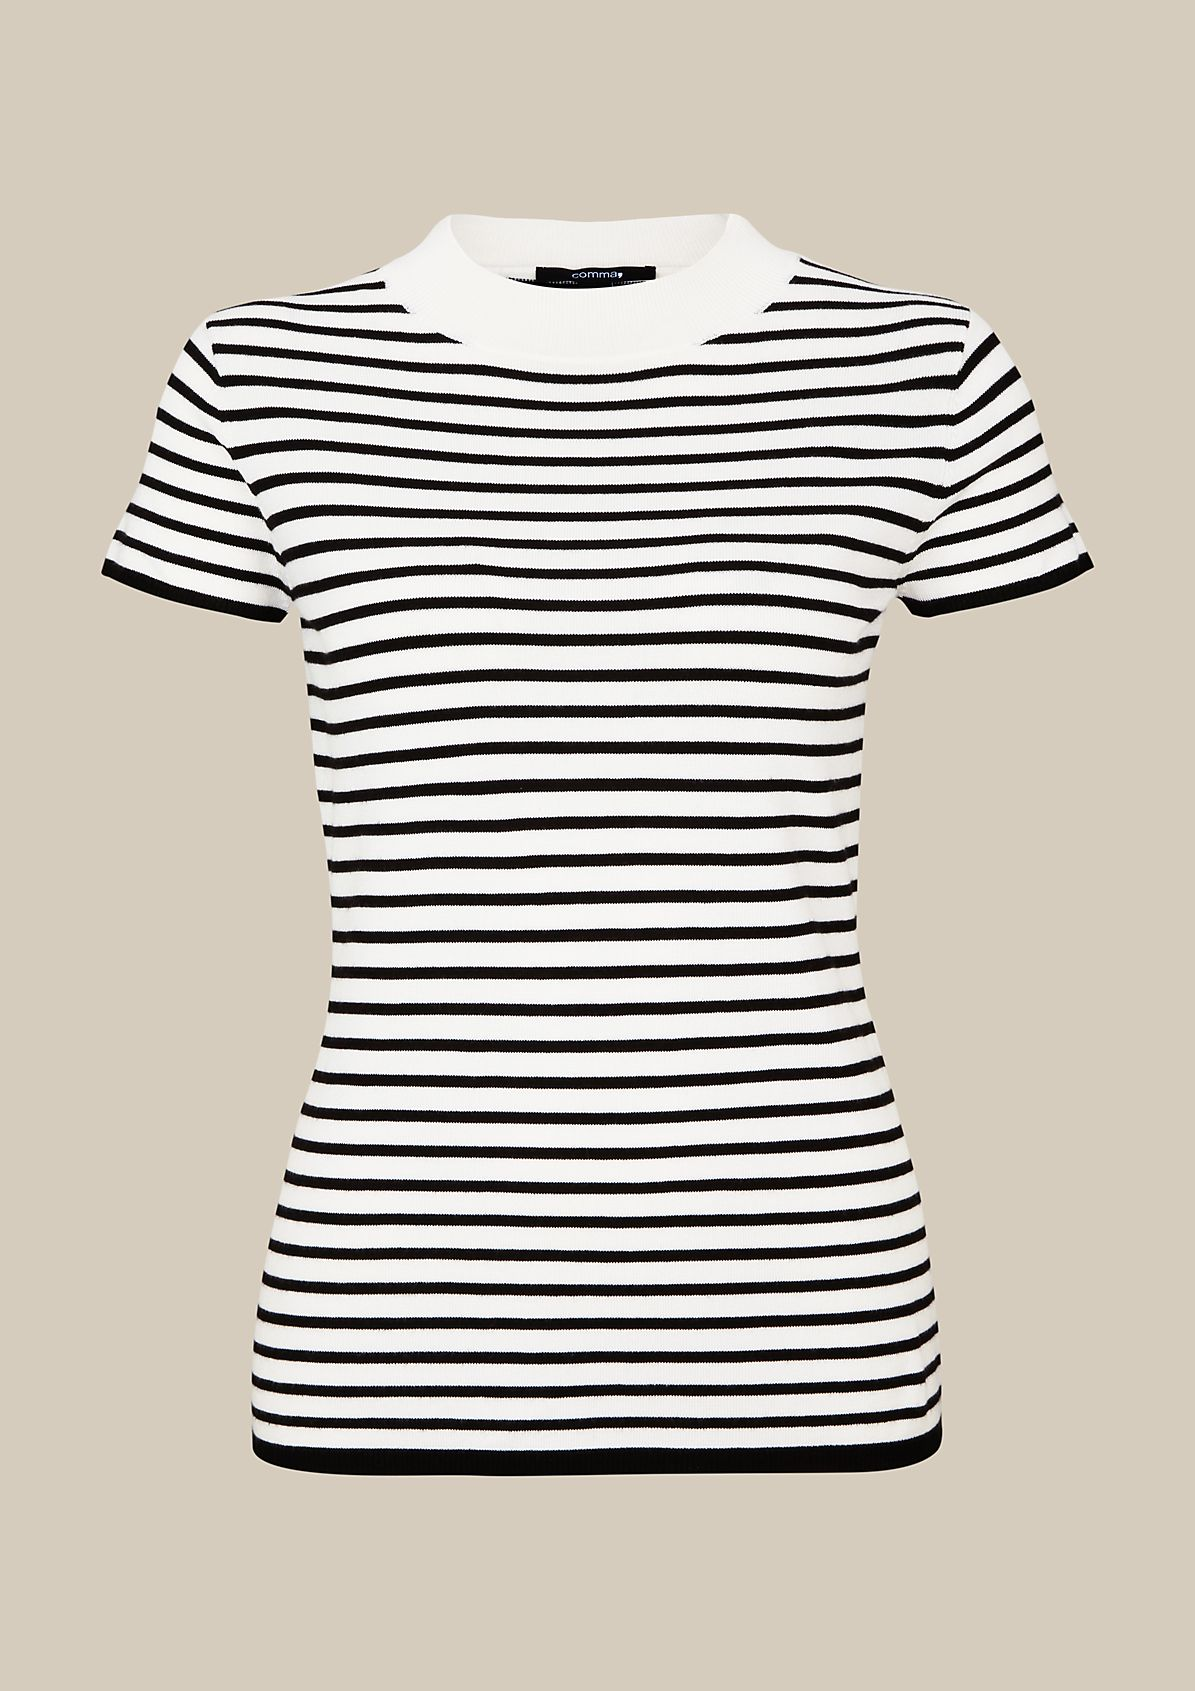 Soft knitted jumper with short arms and a striped pattern from comma